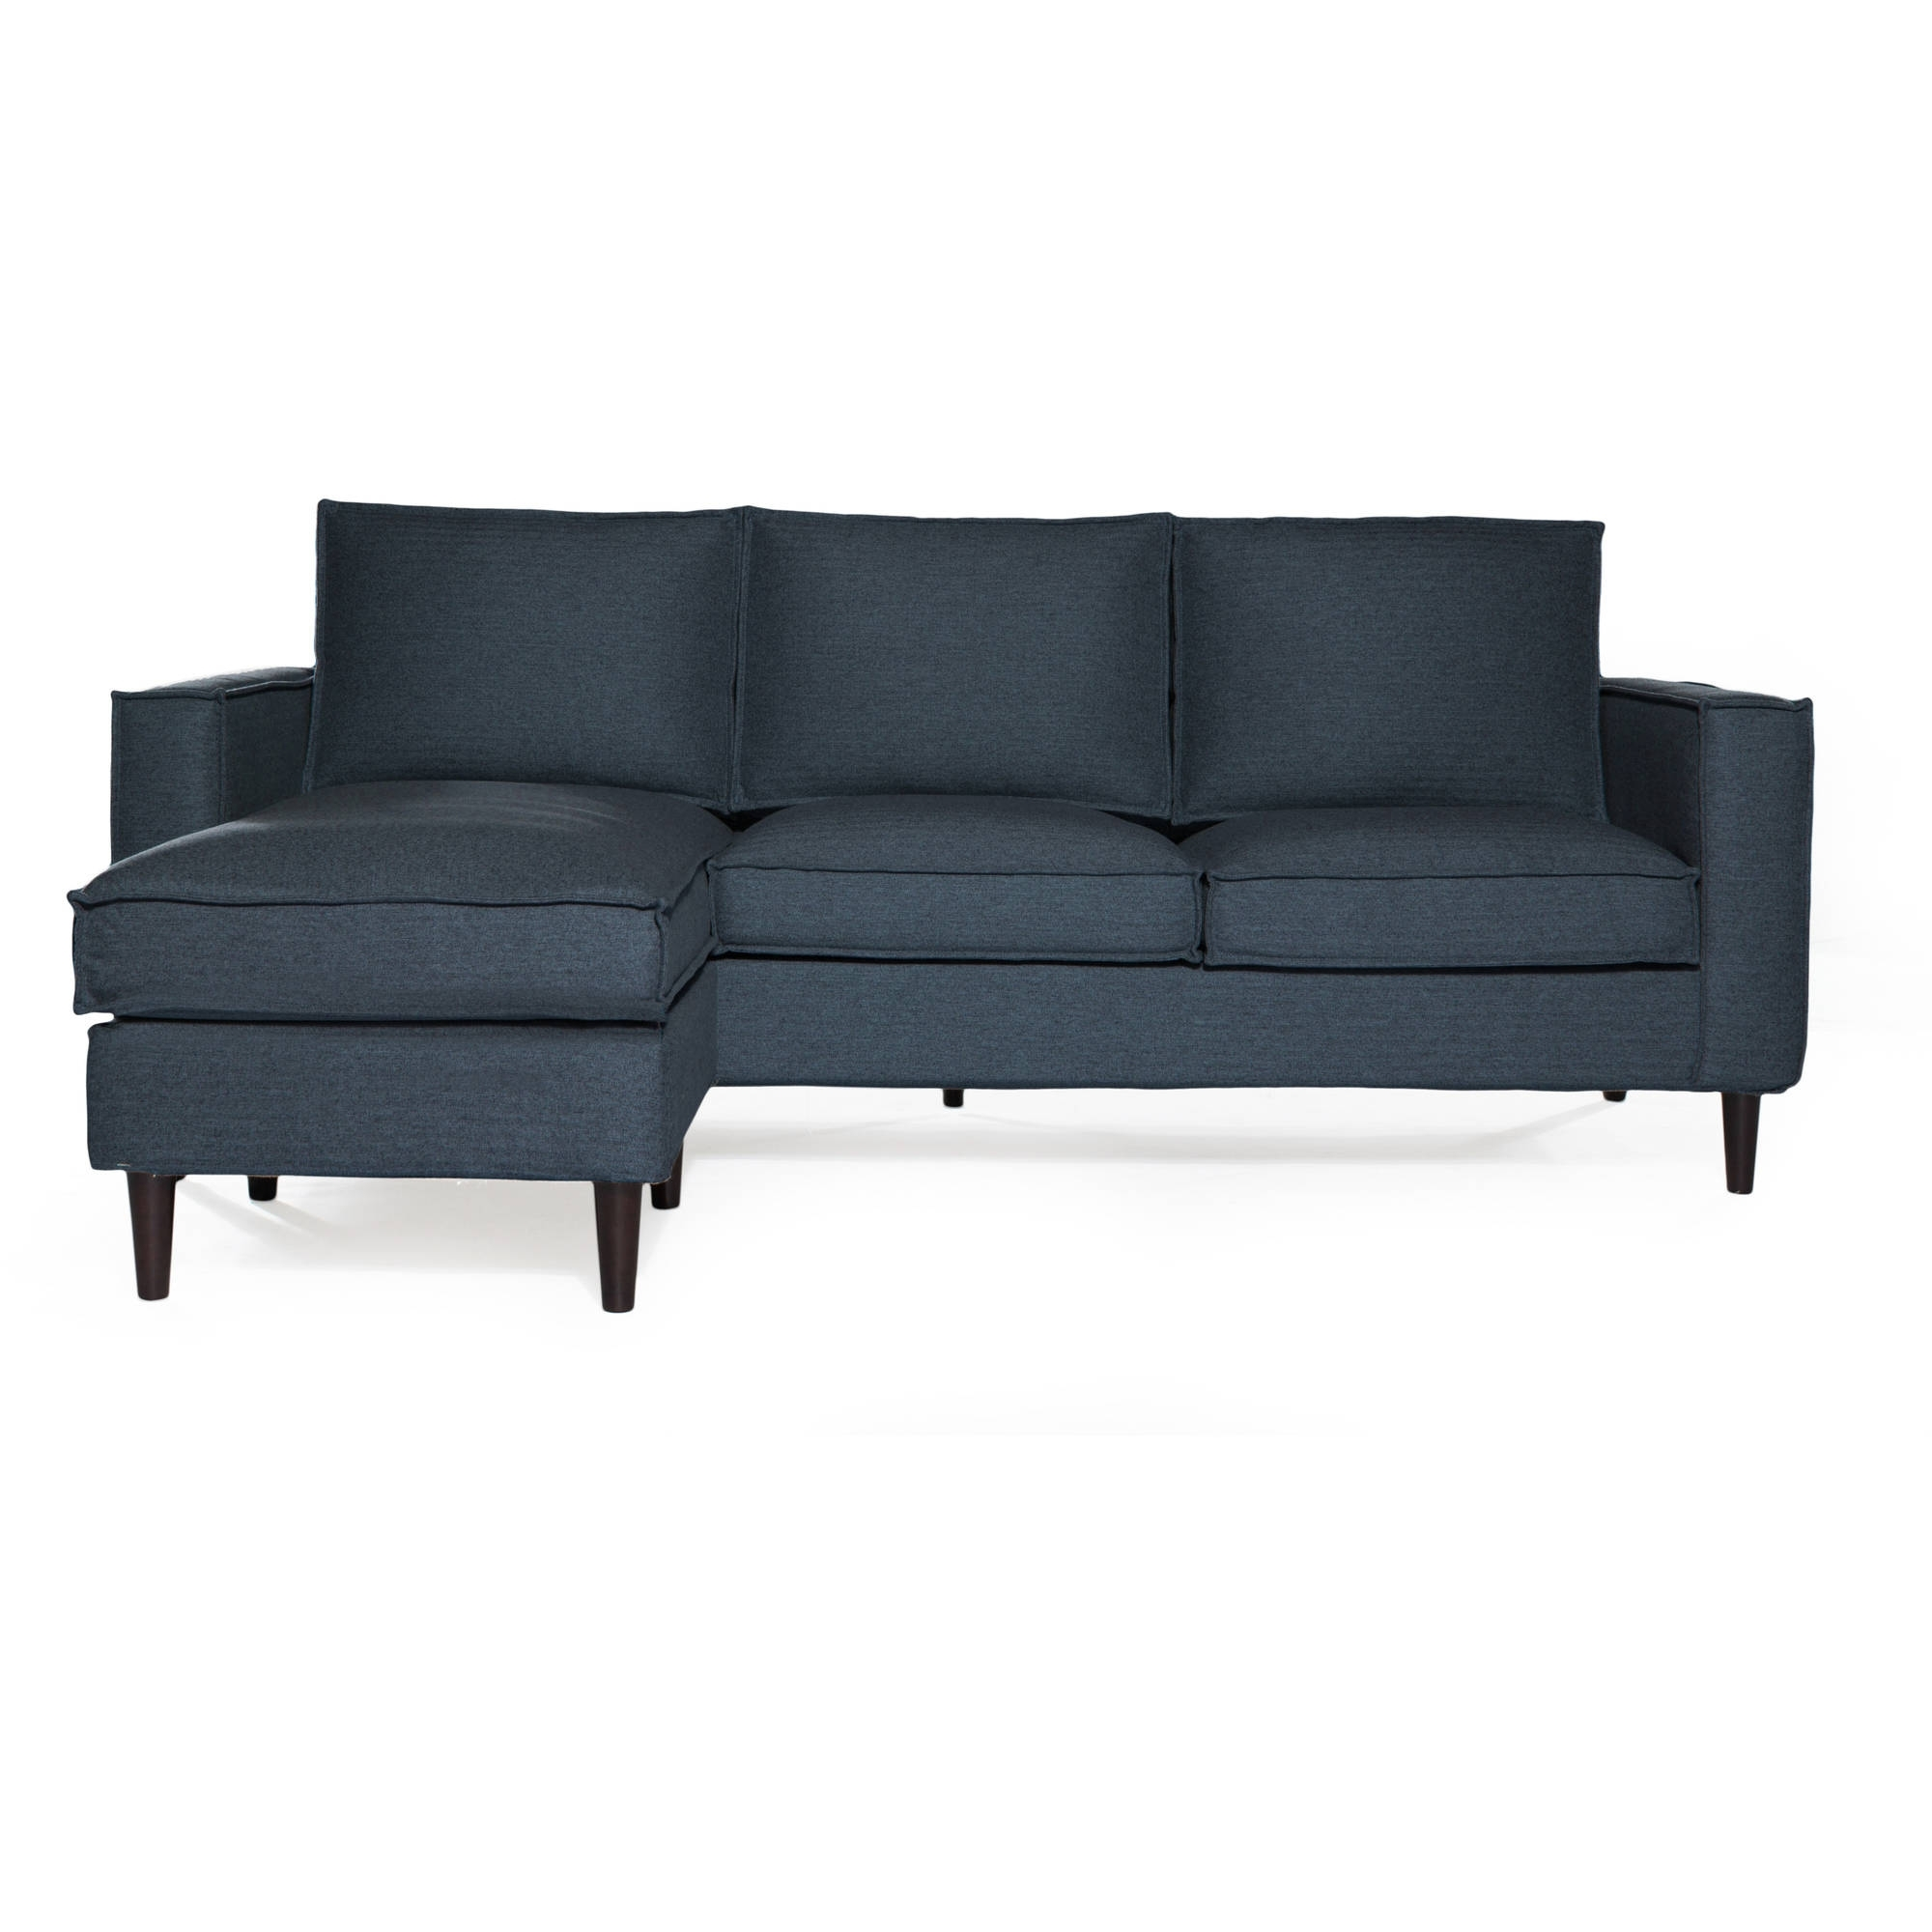 Favorite Nanaimo Sectional Sofas Intended For Loveseats – Walmart (View 13 of 20)